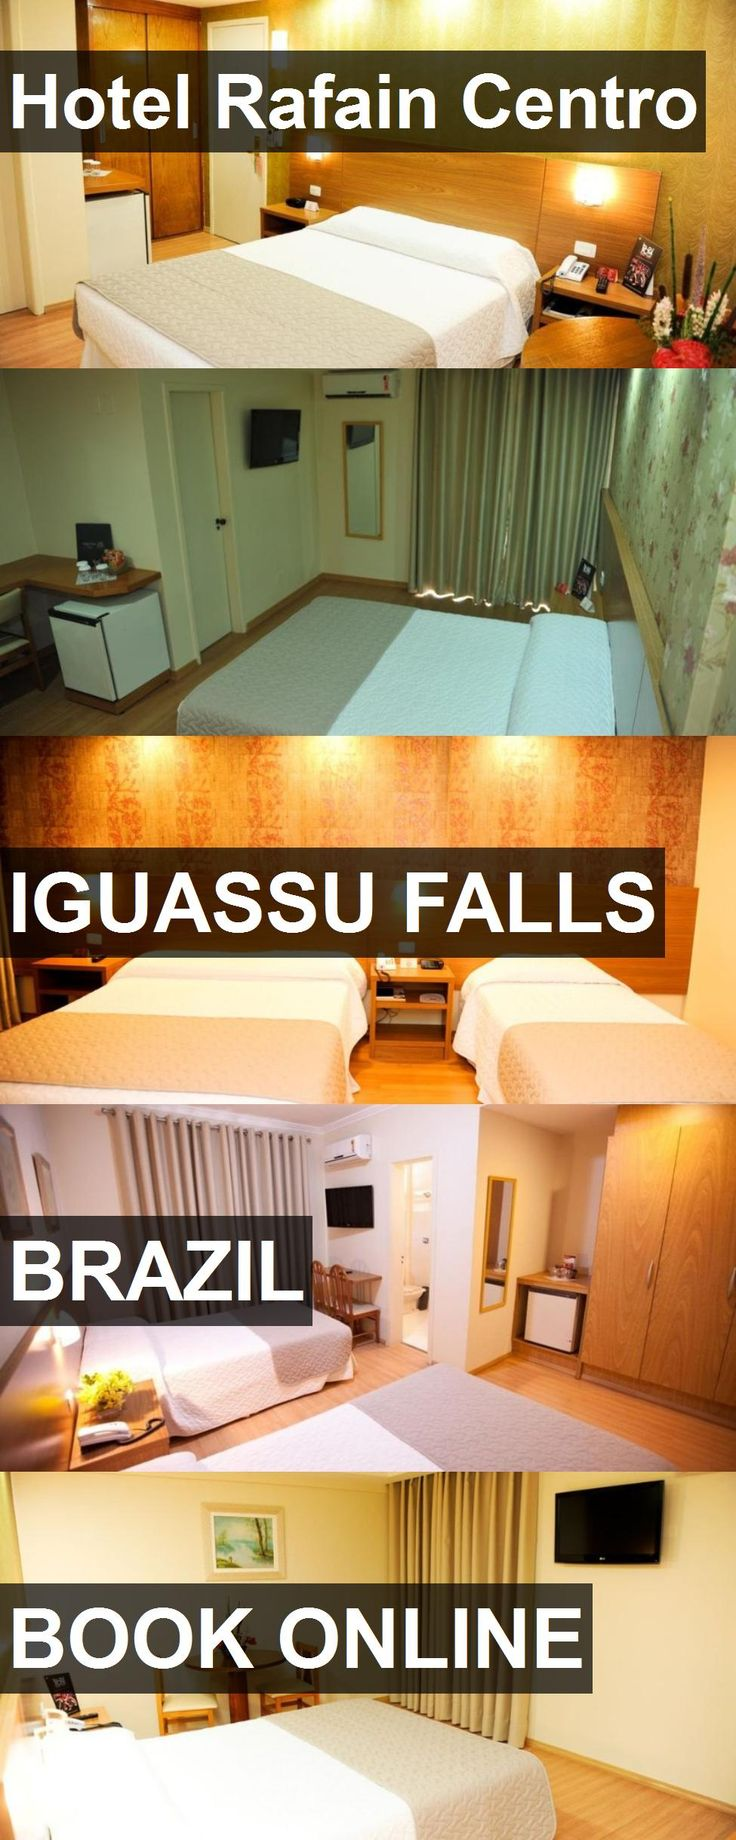 Hotel Hotel Rafain Centro in Iguassu Falls, Brazil. For more information, photos, reviews and best prices please follow the link. #Brazil #IguassuFalls #hotel #travel #vacation